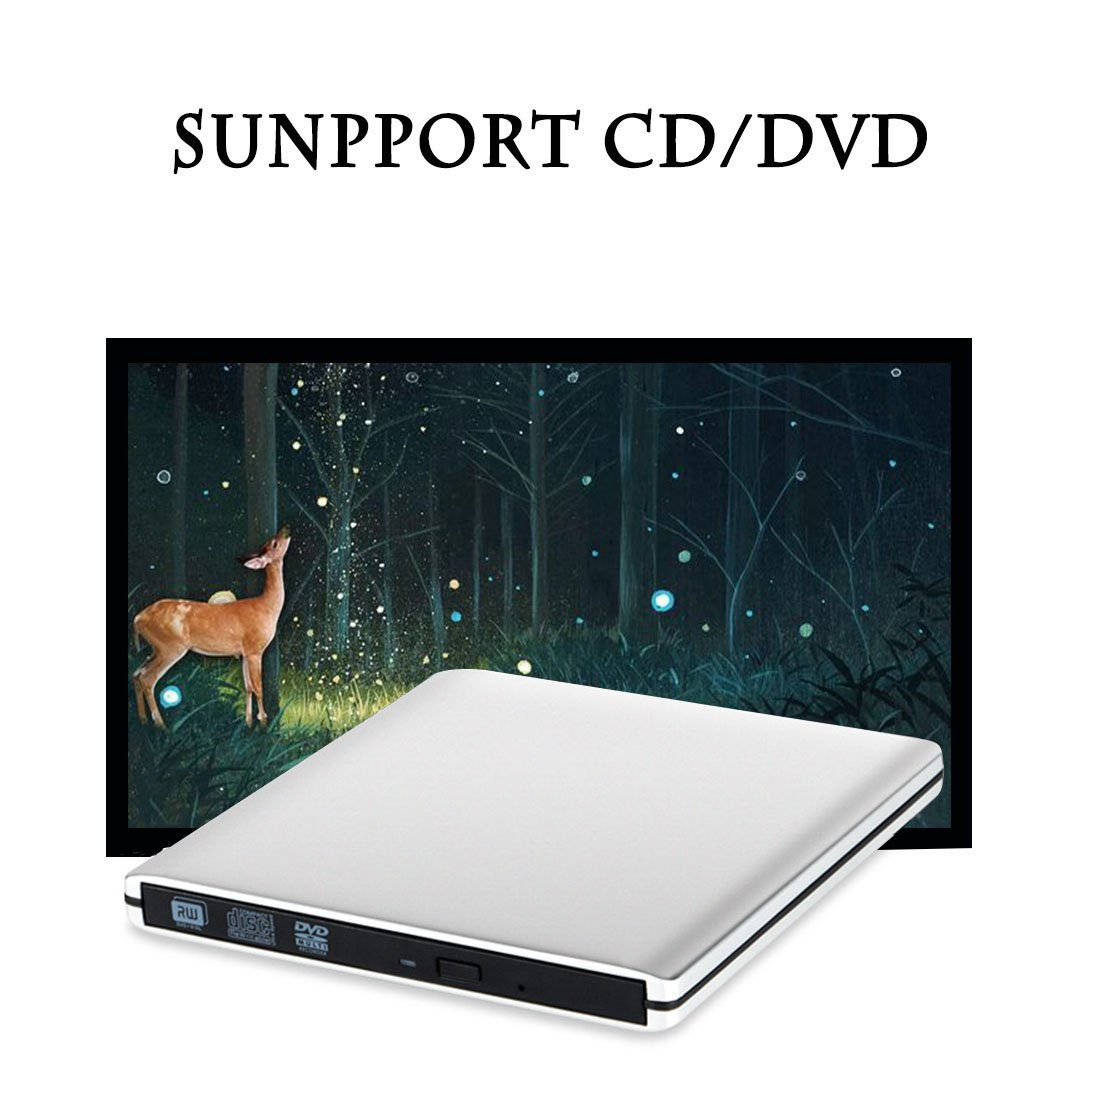 External DVD CD Drive, Sunreal USB 3.0 Portable CD/DVD-RW Player/Burner/Writer, Optical DVD Superdrive for Laptop/Desktop/Computer Support Windows by Sunreal (Image #7)